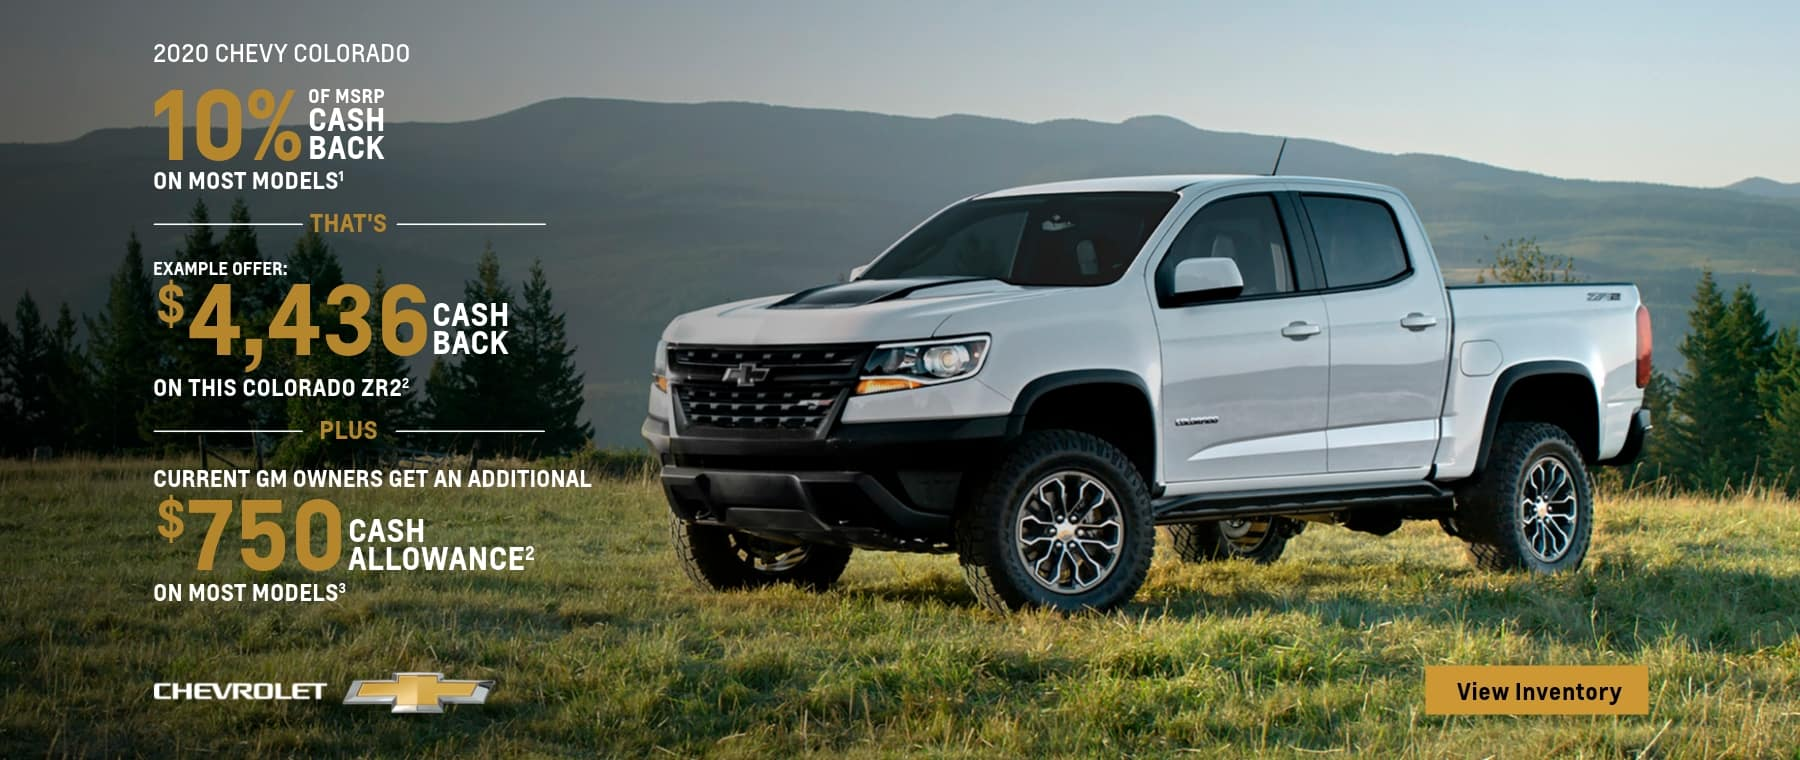 10% Of MSRP Cash Back On Most Models That's Example Offer $4,436 Cash Back on this Colorado ZR2 Plus Current GM Owners get an additional $750 Cash Allowance on most models